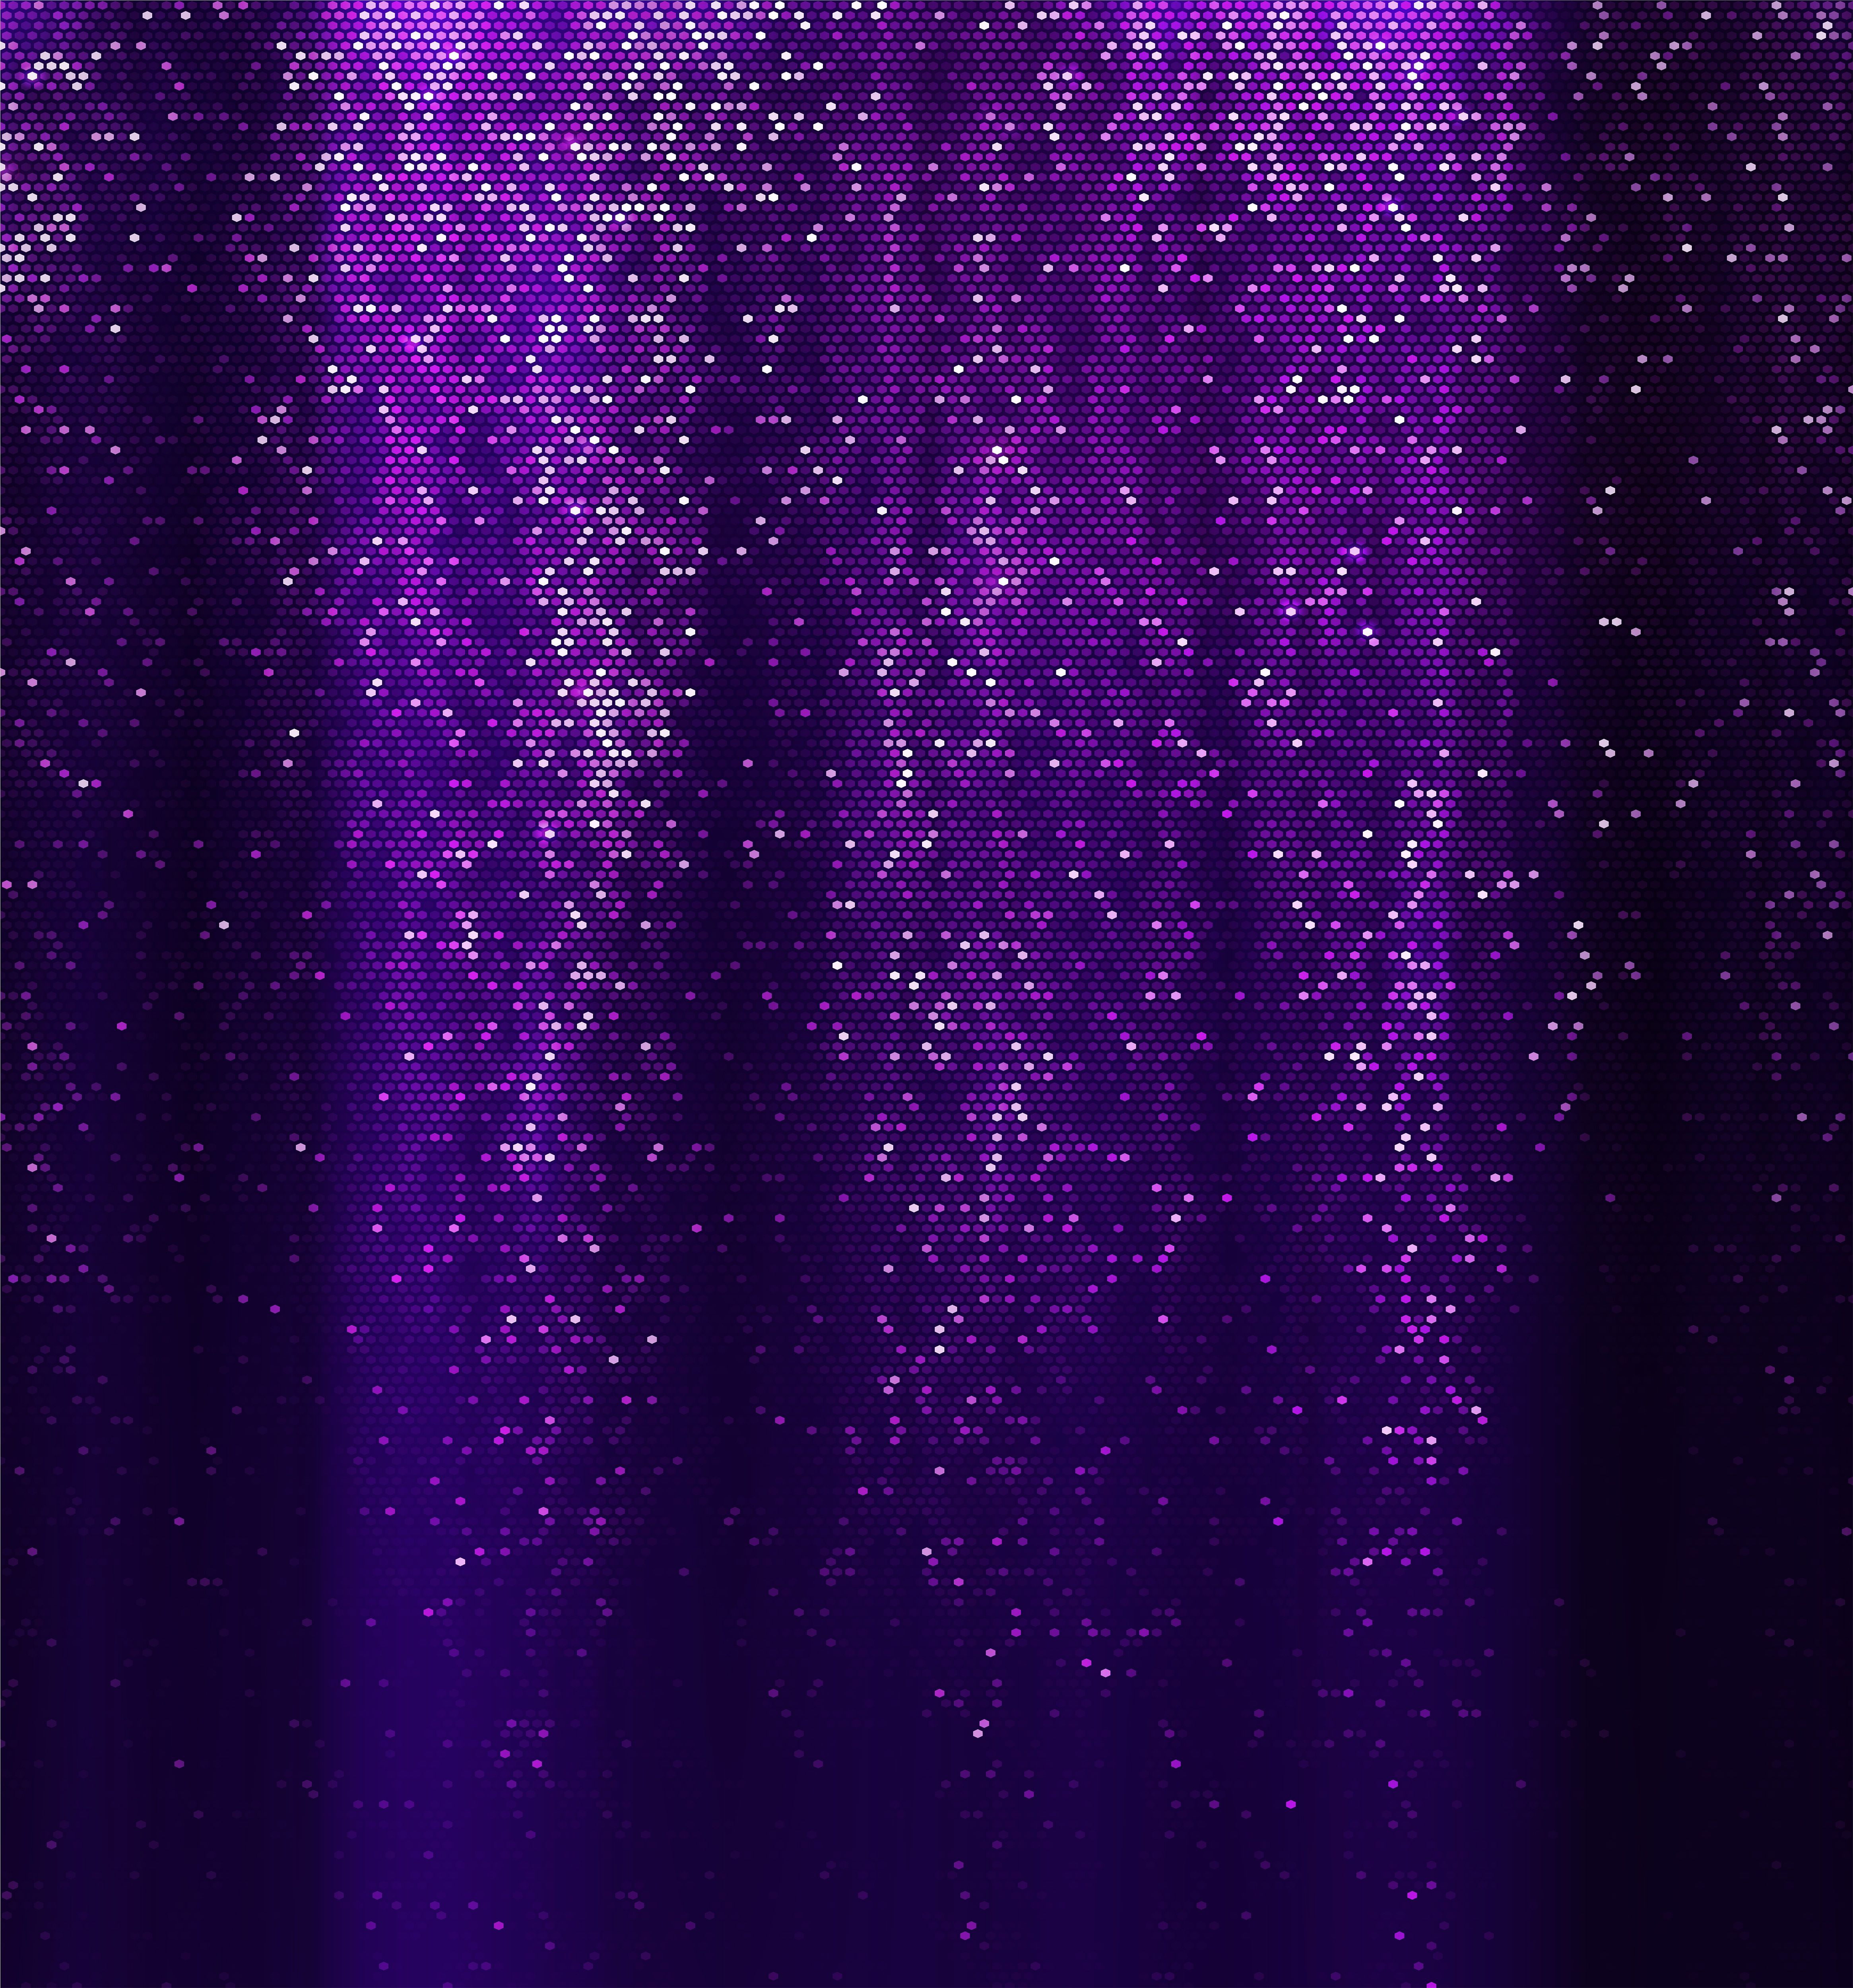 Glittering Purple Background Gallery Yopriceville High Quality Images And Transparent Png In 2021 Purple Glitter Background Purple Backgrounds Glitter Background